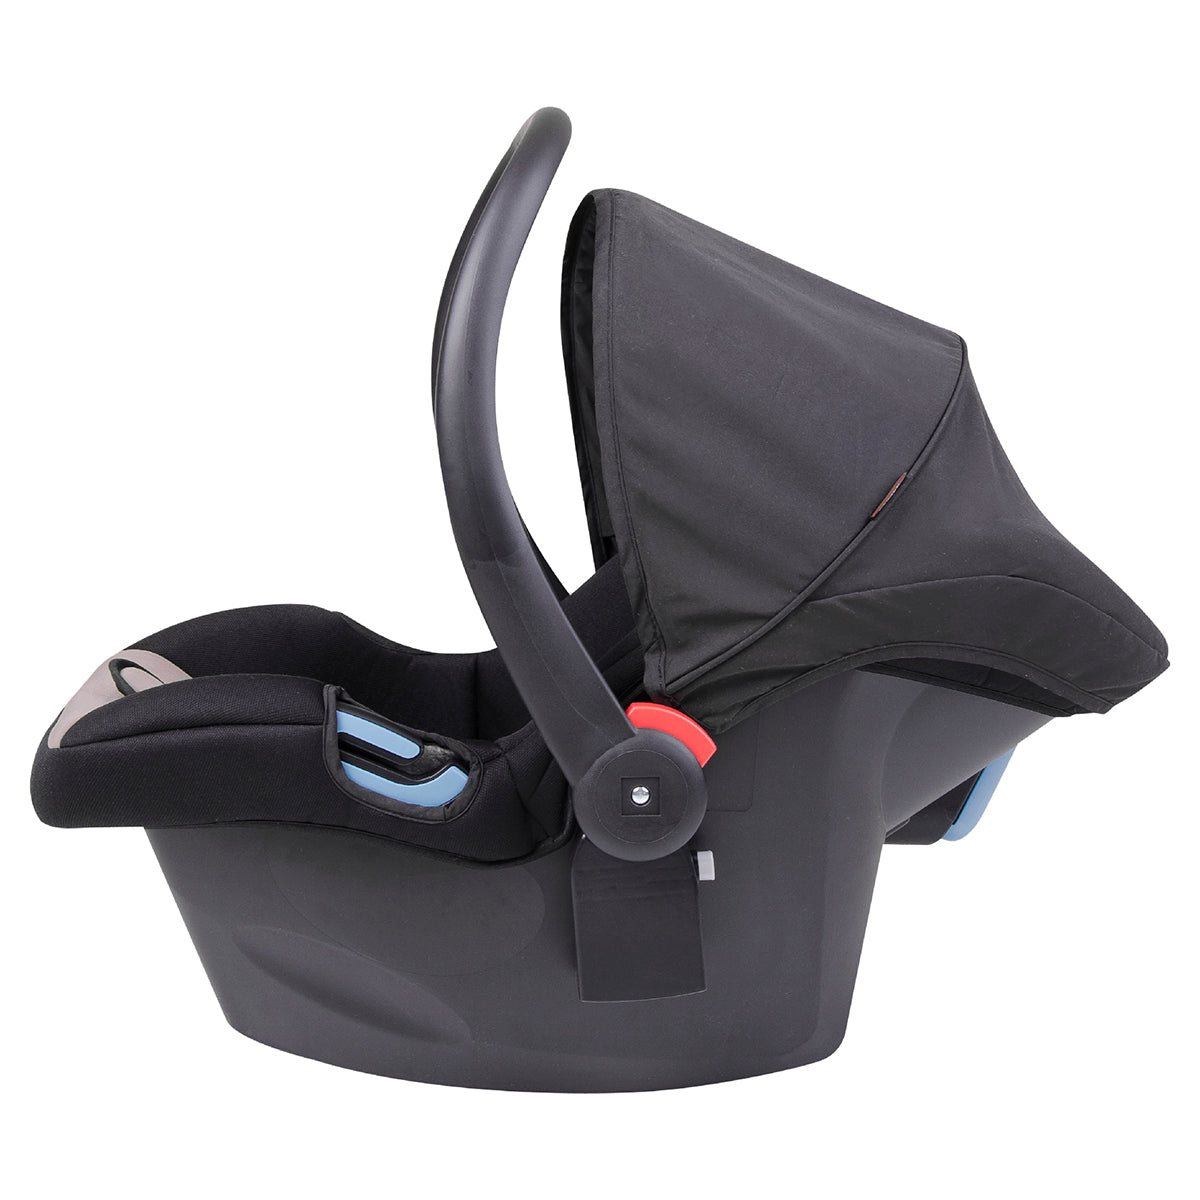 Car Seat, Baby Car Seats Which One Does Your Child Need